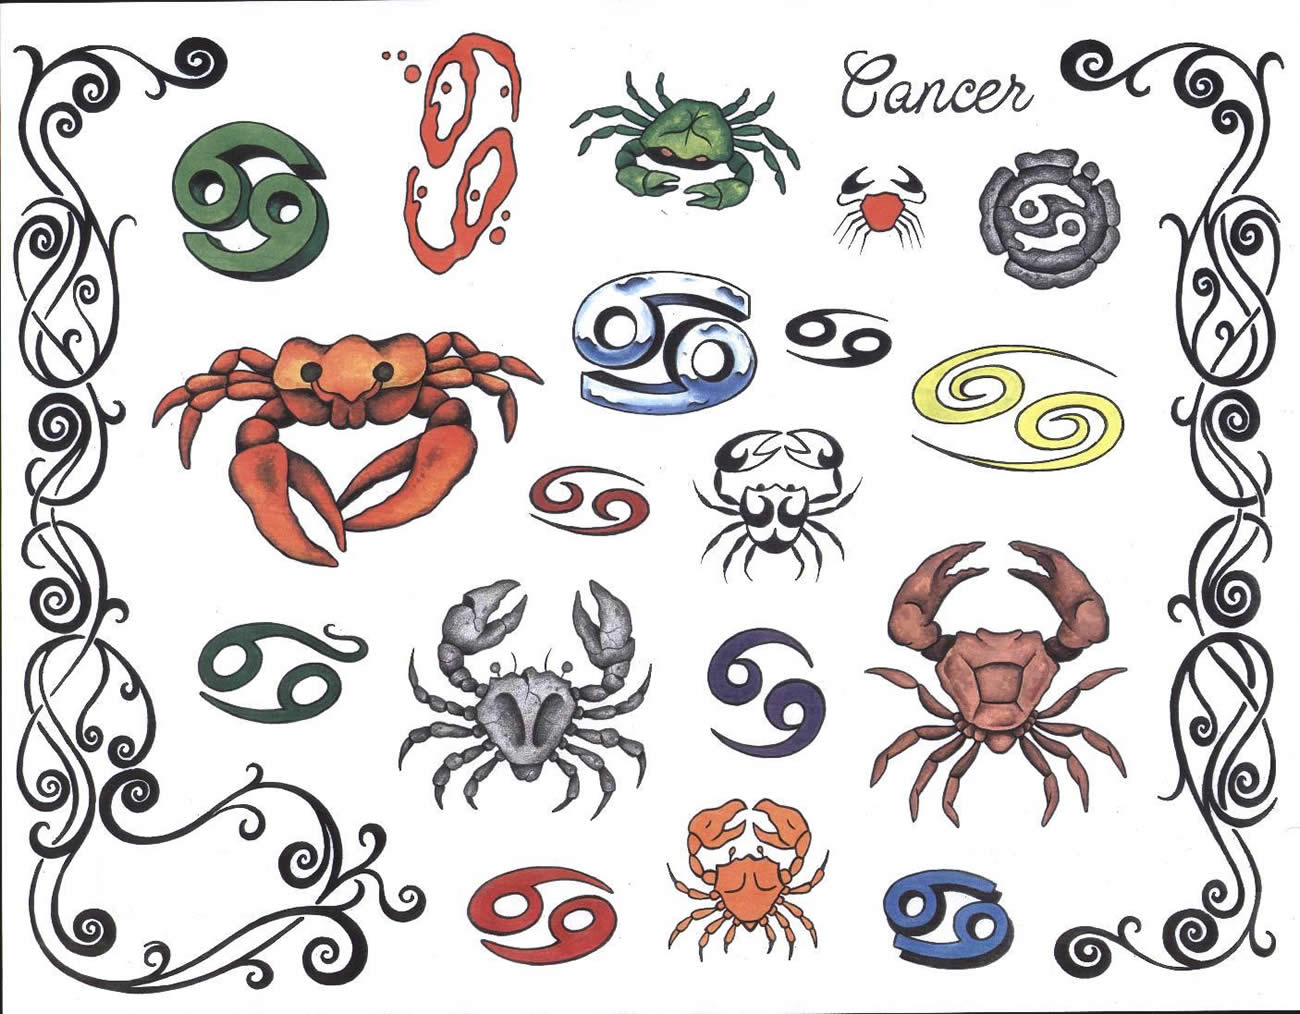 Colorful Zodiac Cancer Tattoos Designs